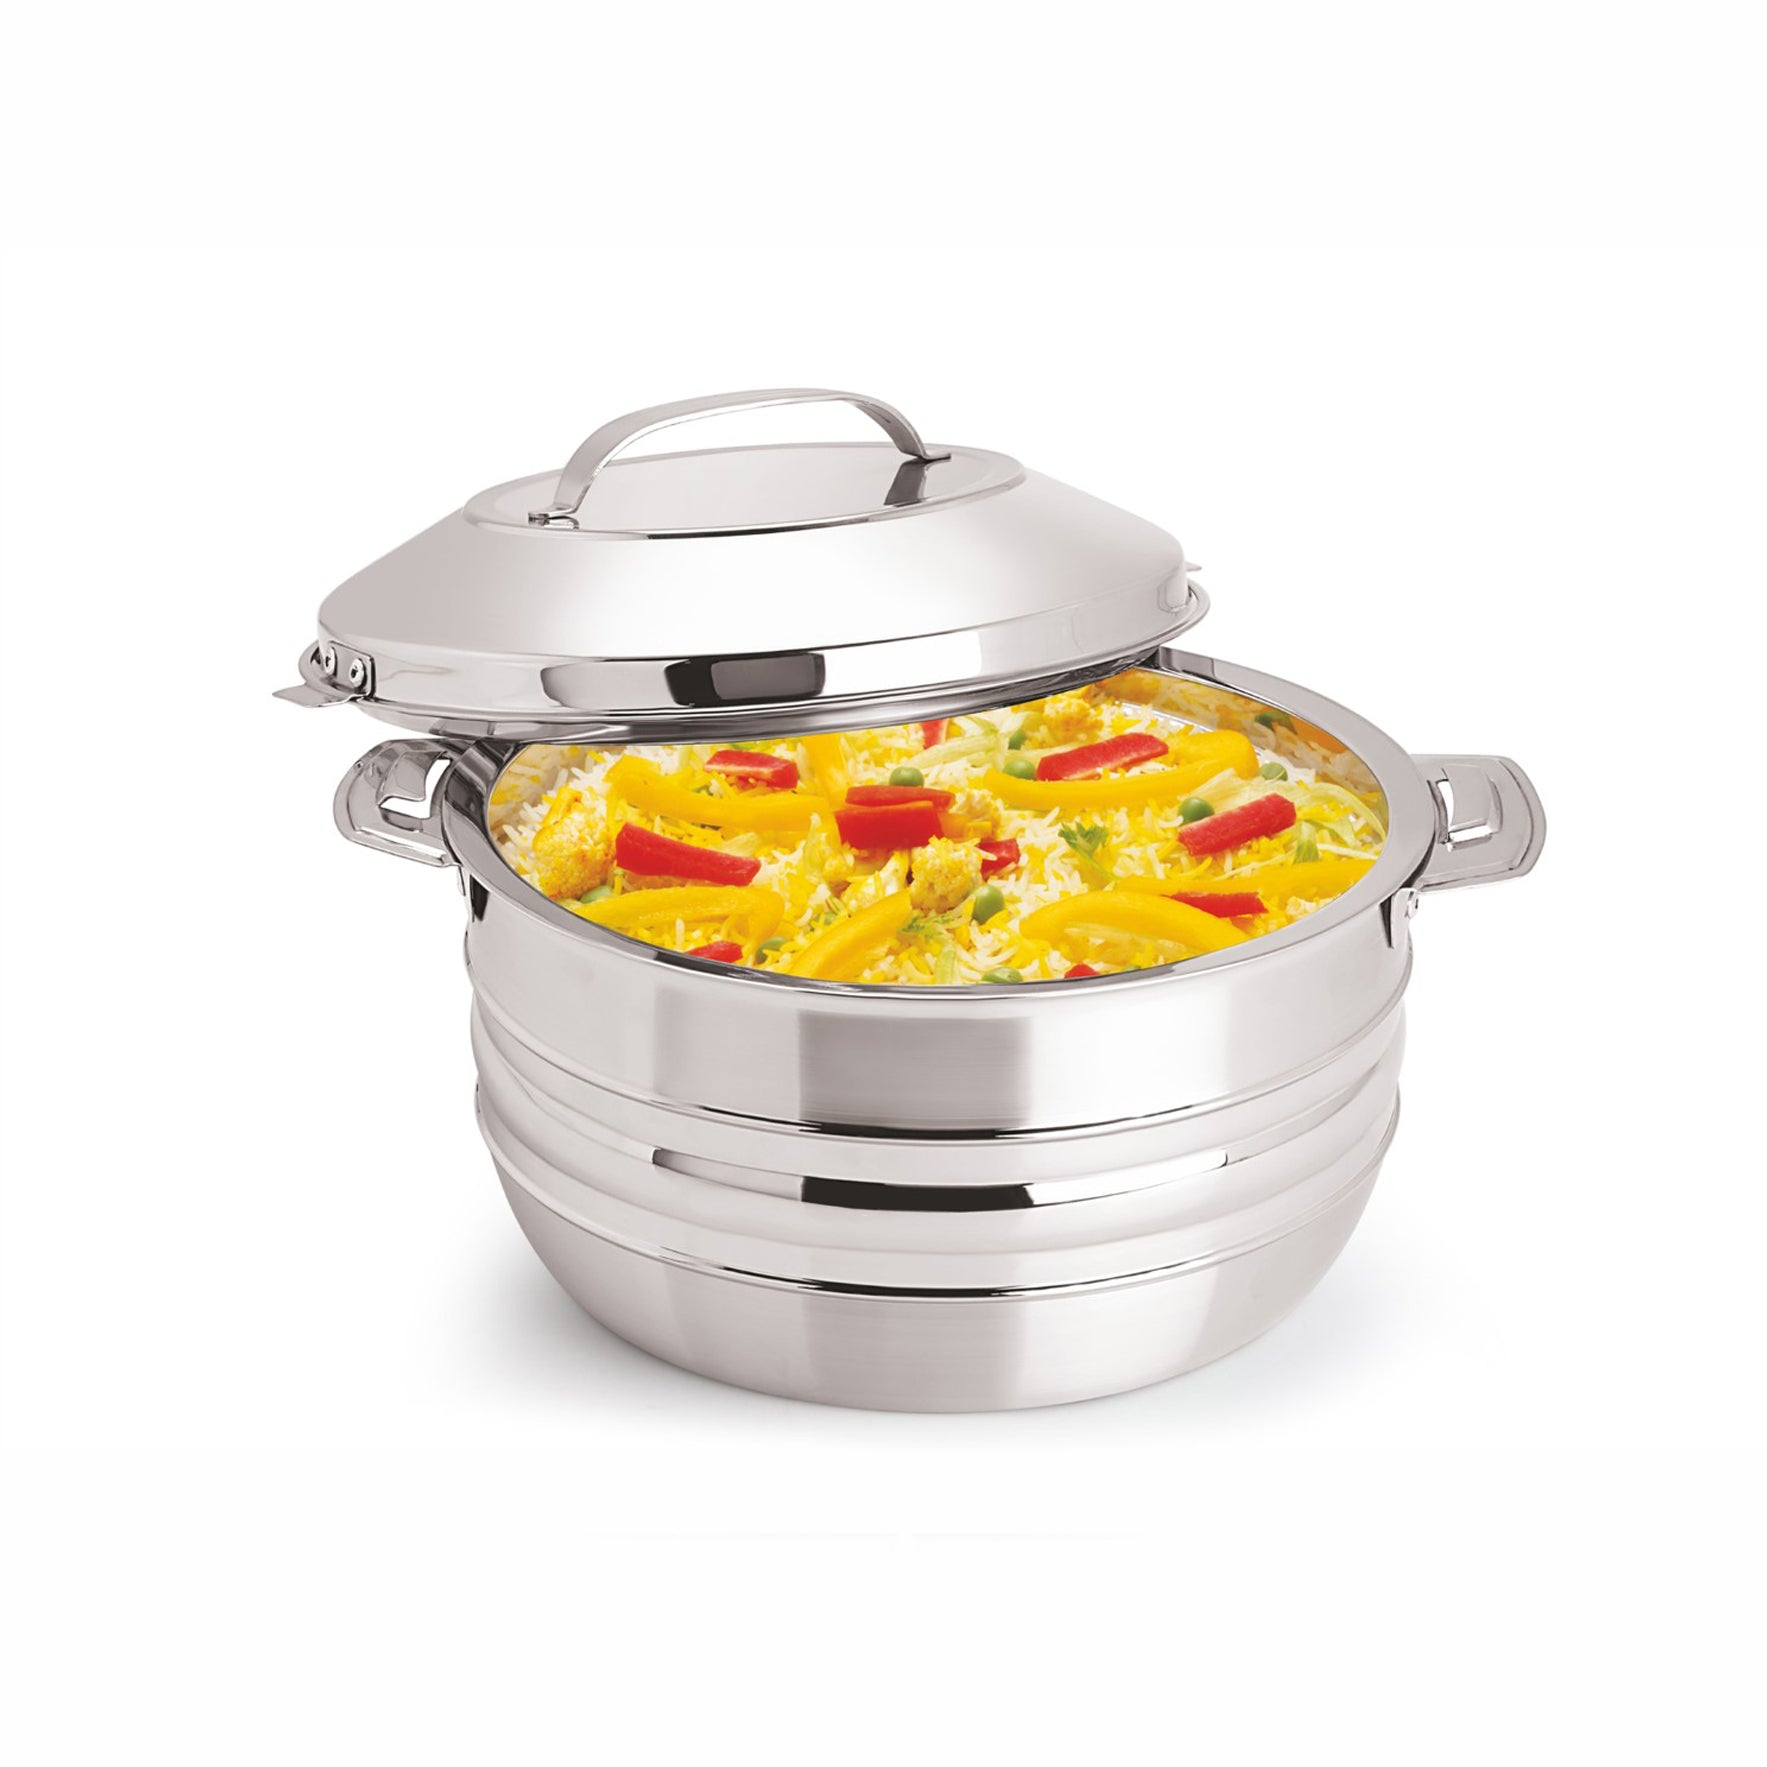 Royalford RF8416 - 6L Stainless Steel Esteelo Hot Pot - Double Wall Hot Pot | Serving Dishes with Lids | Hot Food Storage Containers & Warmers with Comfortable Handle | Storage Saver for Everyday Use